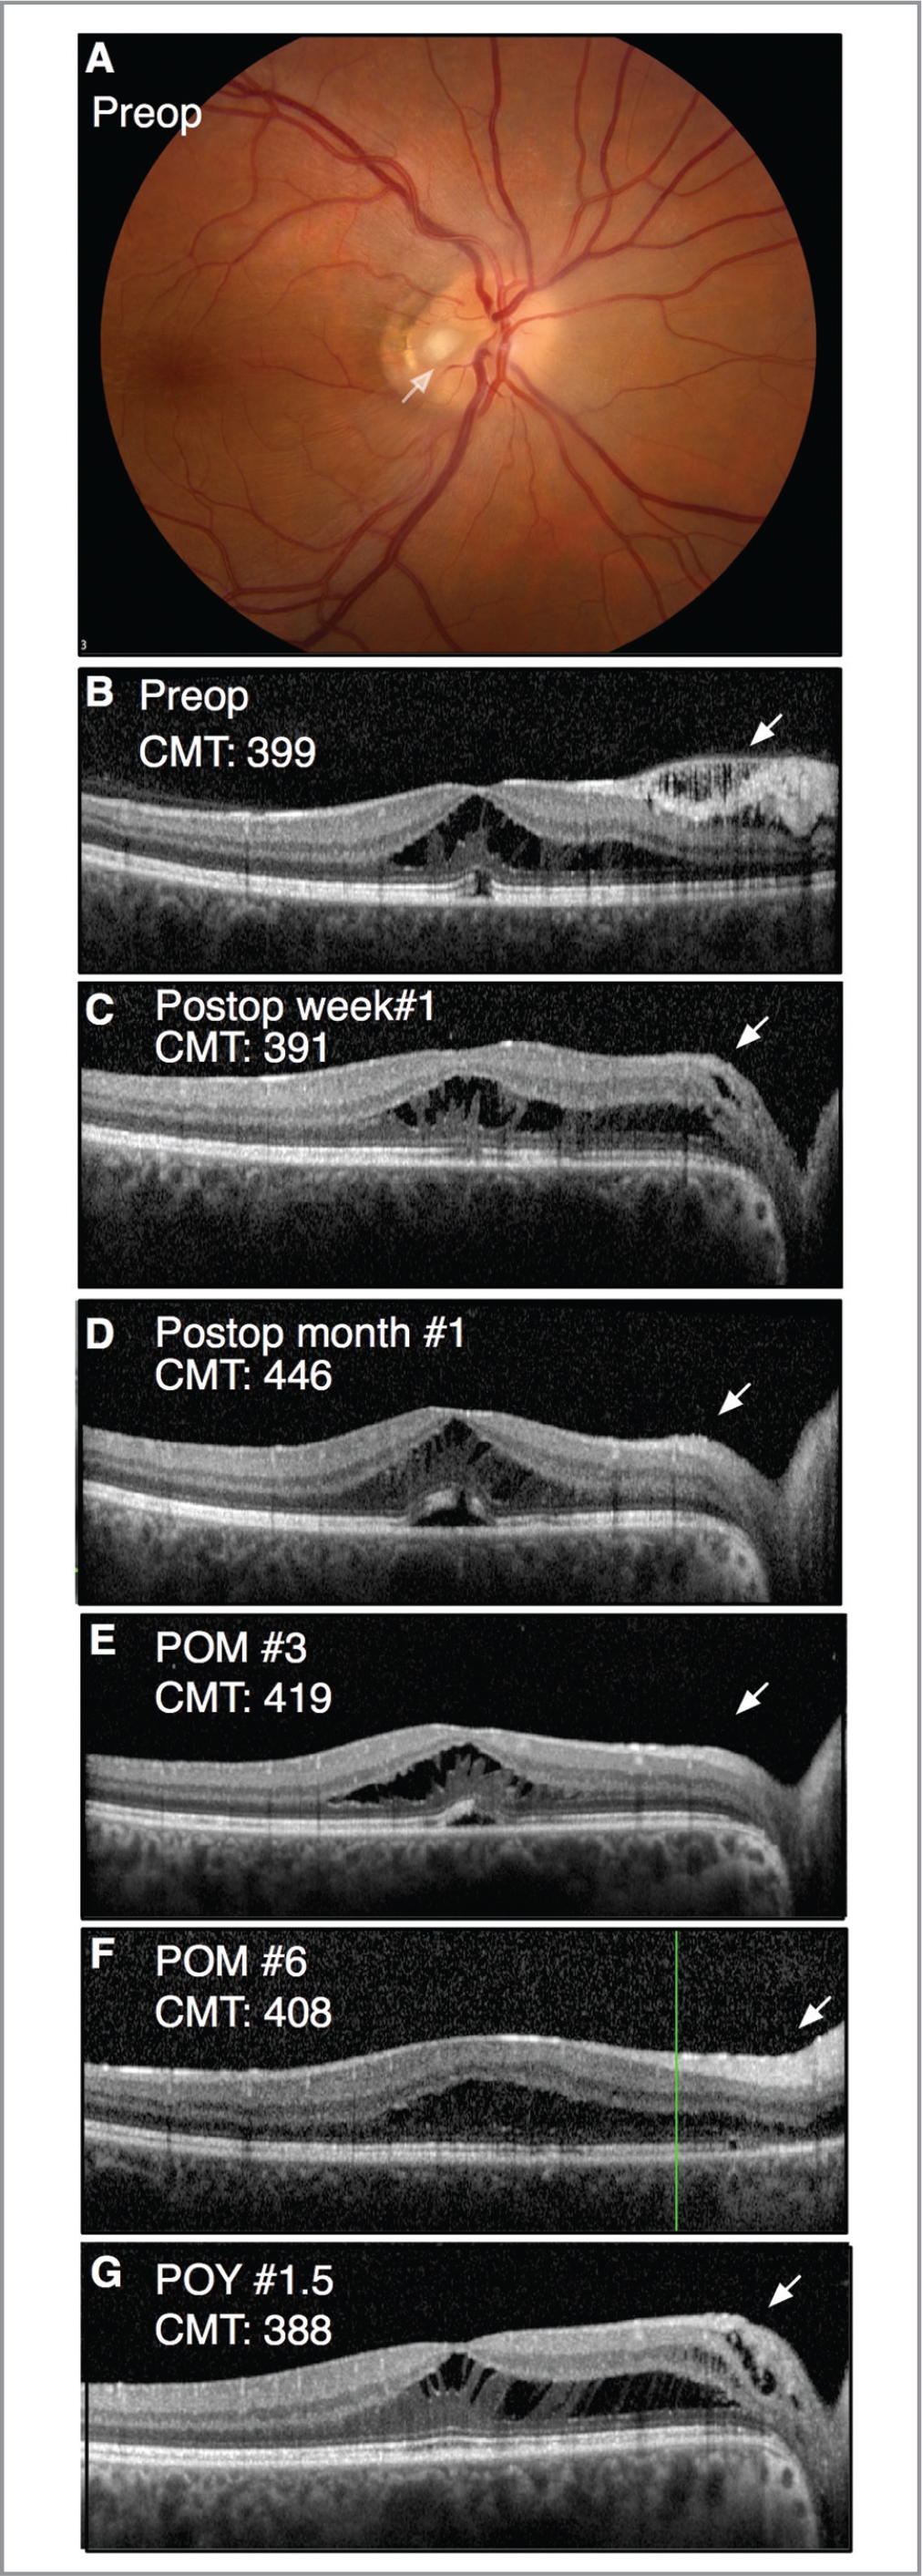 Case 3. (A) Fundus photograph of the right eye showed a temporal optic disc pit with serous macular retinal detachment and an epiretinal membrane. (B) Preoperative optical coherence tomography shows a mild nasal epiretinal membraneand inner and outer schisis. (C) At postoperative week 1, macular schisis was reduced with significant anatomical flattening of the inner retinal schisis. (D–F) At postoperative months 1 through 3, macular schisis improved with gradual flattening of the outer retinal cystoid changes. (G) At 18 months postoperatively, there was asymptomatic mild macular edema with residual macular schisis.